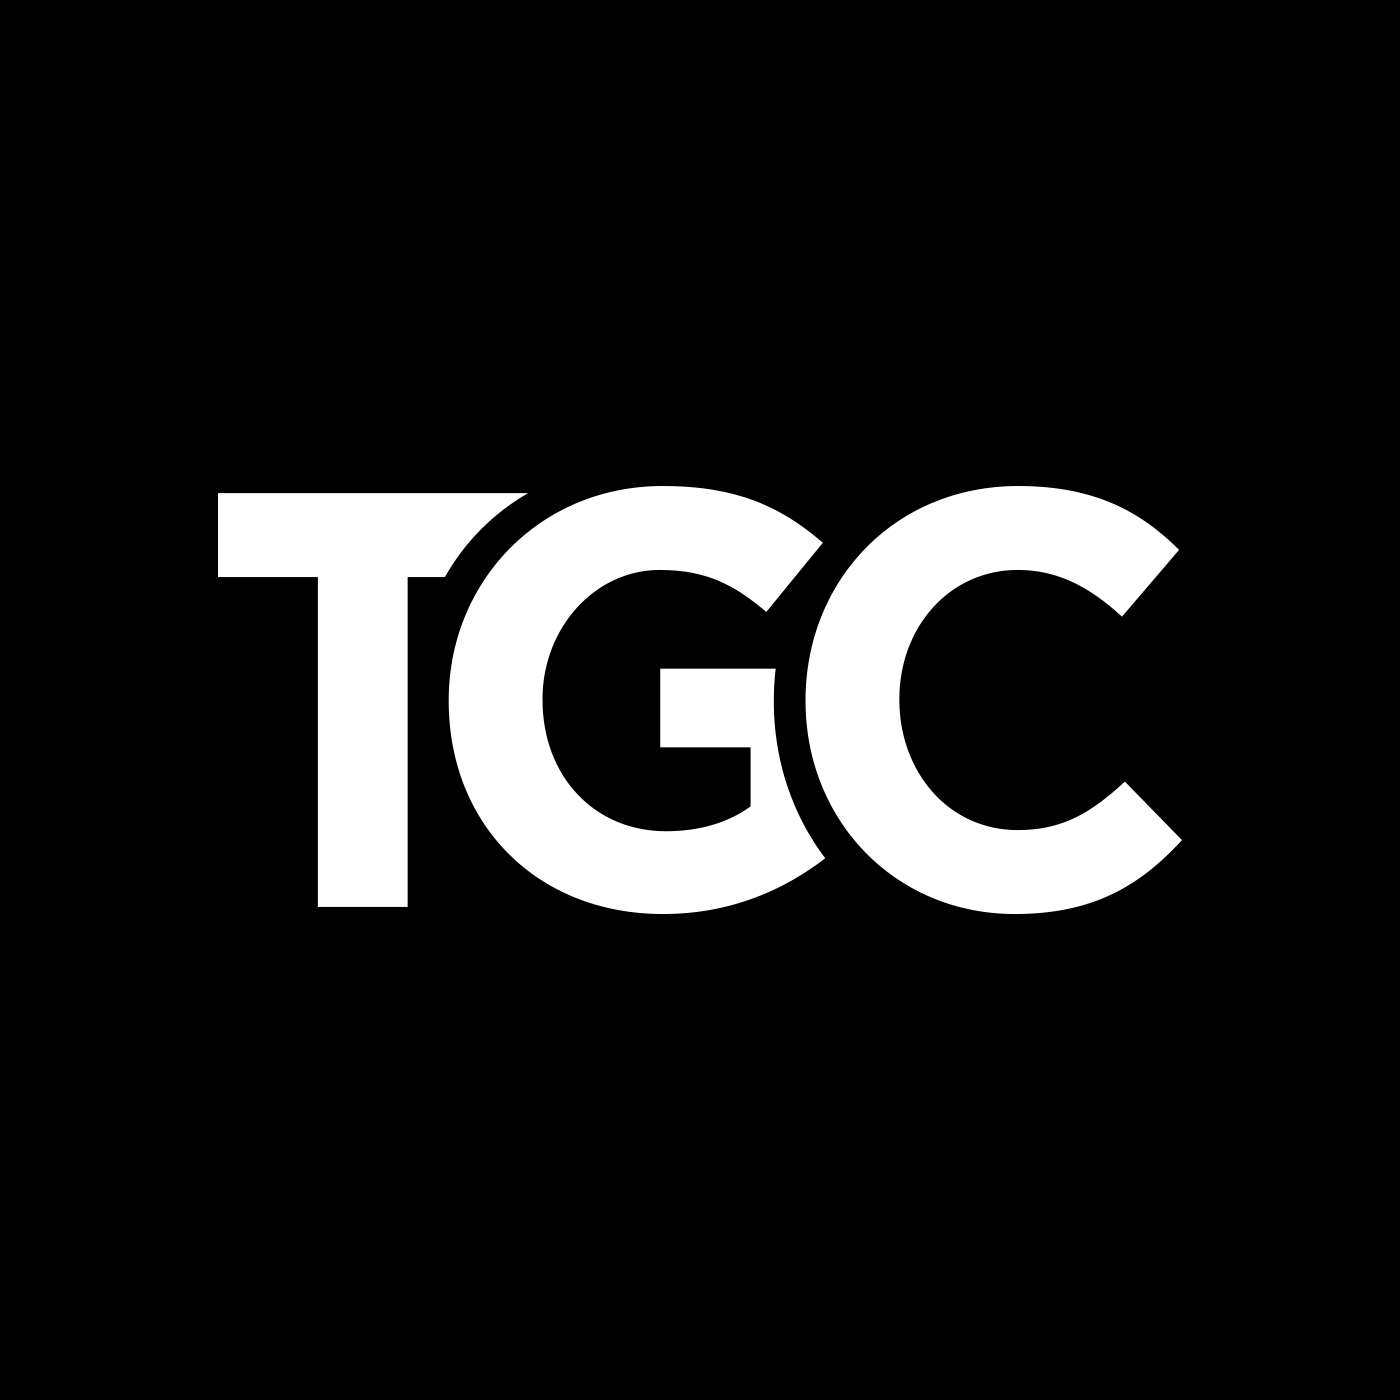 """The Gospel Coalition  From  www.thegospelcoalition.org :  """"We are a fellowship of evangelical churches in the Reformed tradition deeply committed to renewing our faith in the gospel of Christ and to reforming our ministry practices to conform fully to the Scriptures."""""""